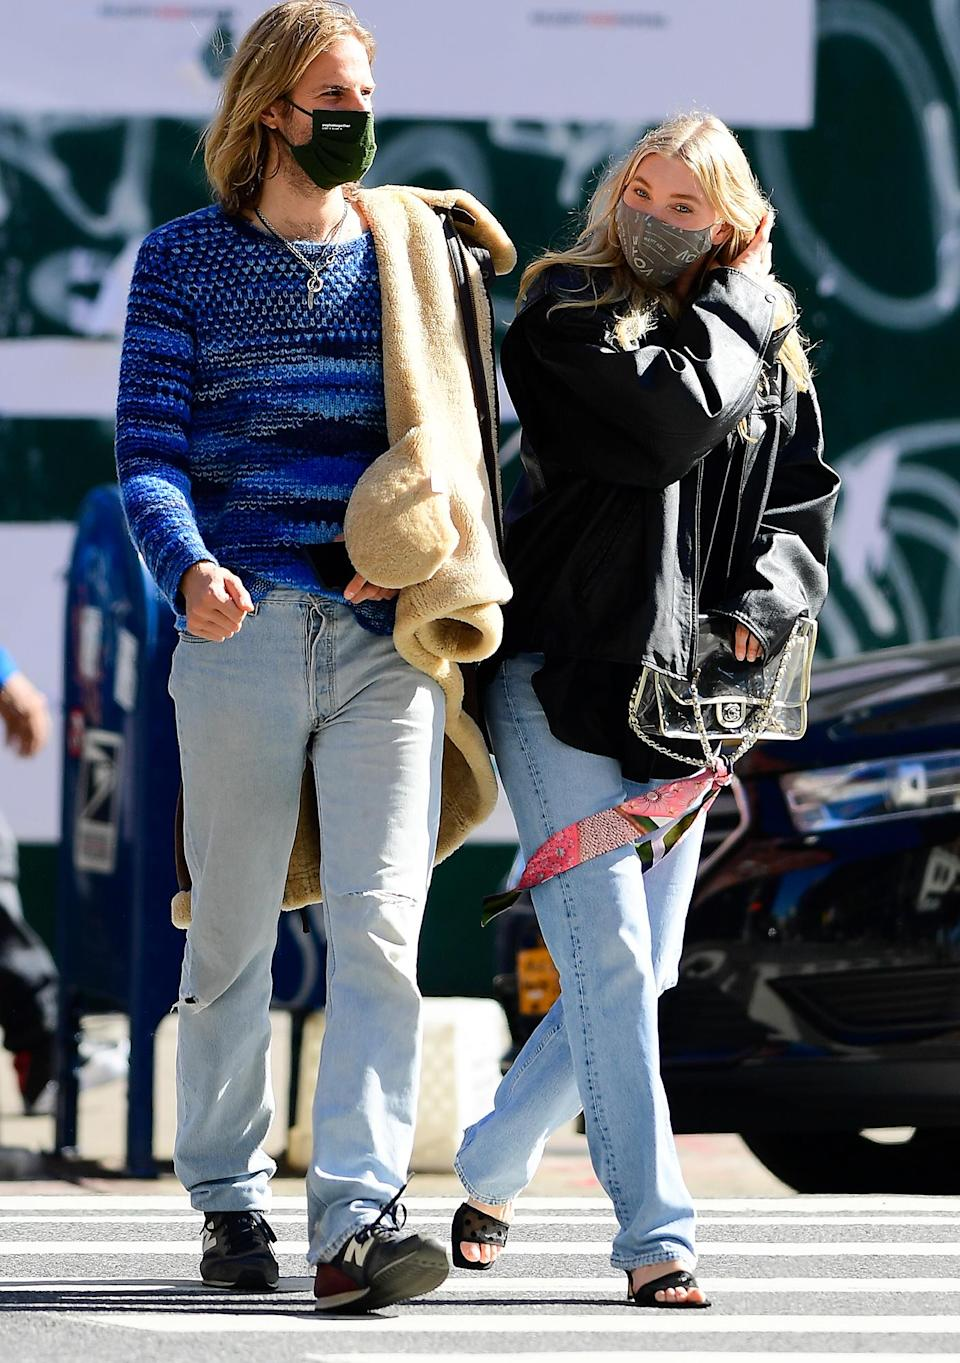 <p>Elsa Hosk and Tom Daly head out to take a walk through Soho on Wednesday in N.Y.C.</p>